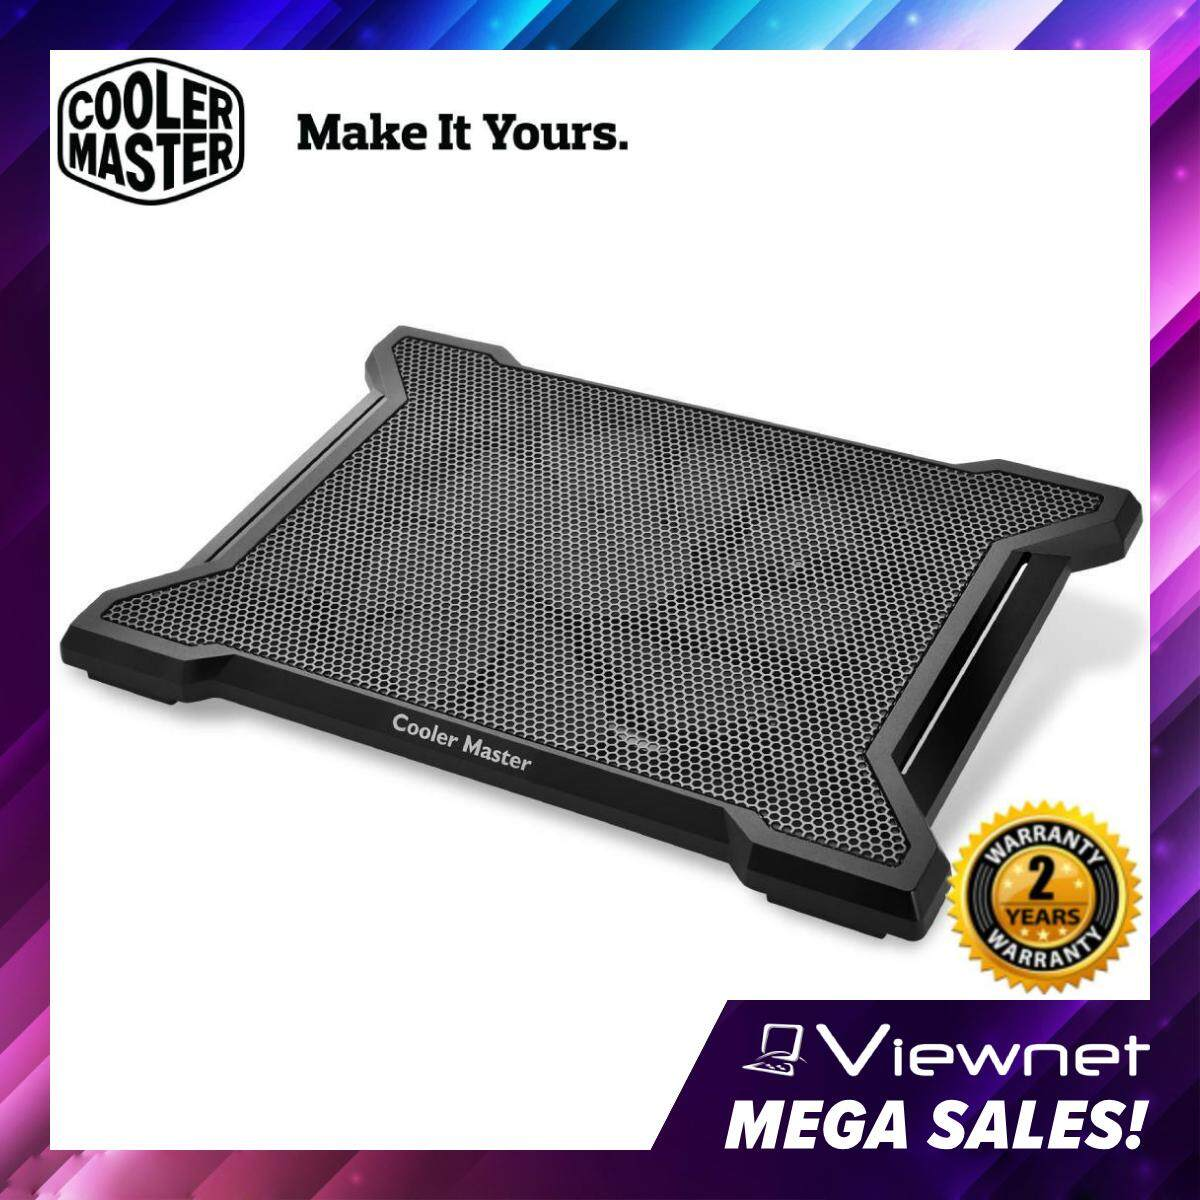 Cooler Master Notepal X-SLIM II 200mm Silent Fan Ergonomic Mesh USB 2.0 Gaming Notebook Cooler for up to 15.6 Laptop (R9-NBC-XS2K-GP) Malaysia